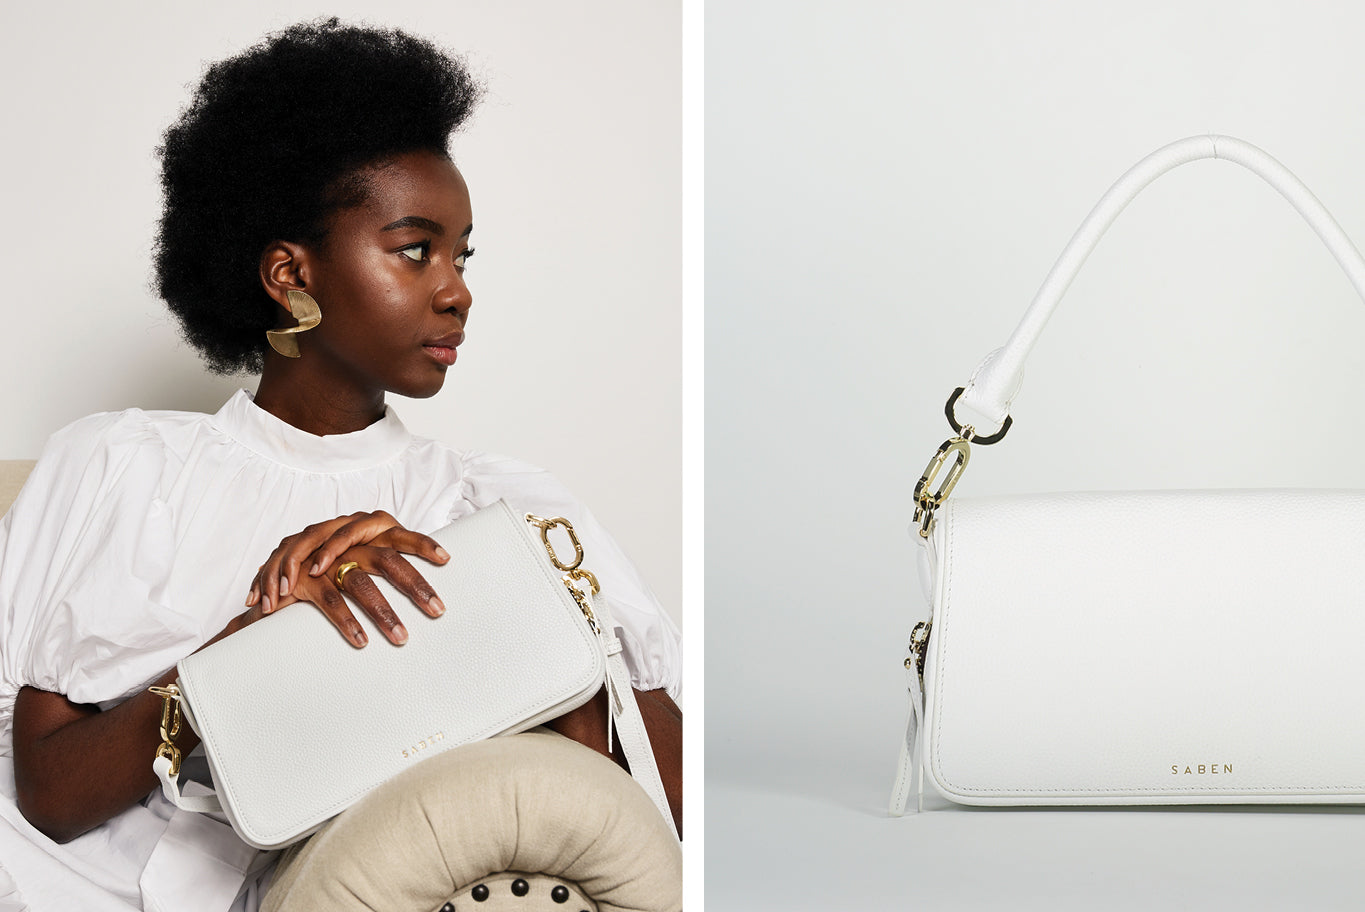 Saben SS20 Prelude collection featuring new style white leather handbag Brooklyn